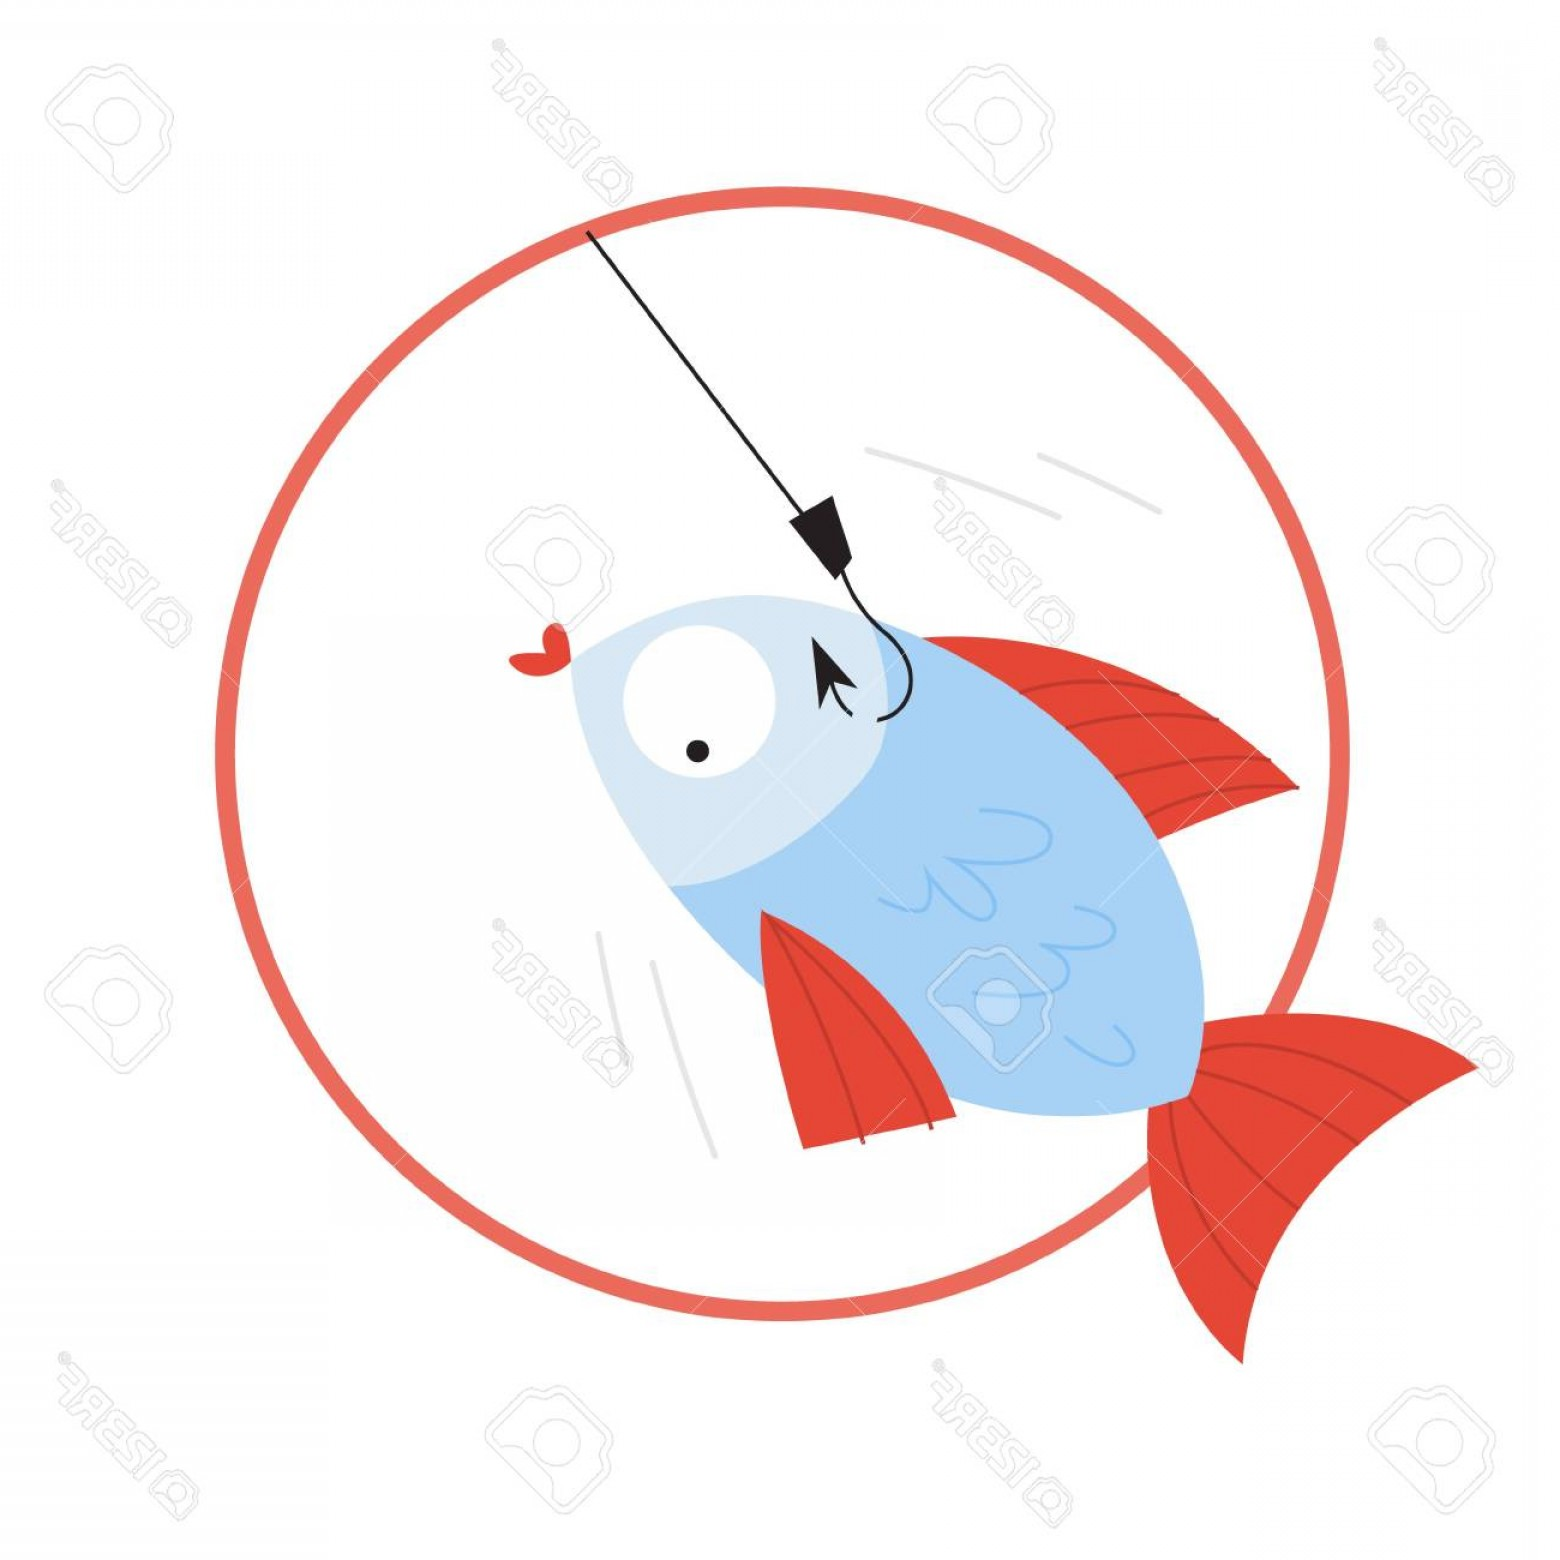 Catching Fish Hook Vector Art: Photostock Vector Catch Fish On The Hook Idea Of Fishing Hobby Underwater Animal Isolated Flat Vector Illustration